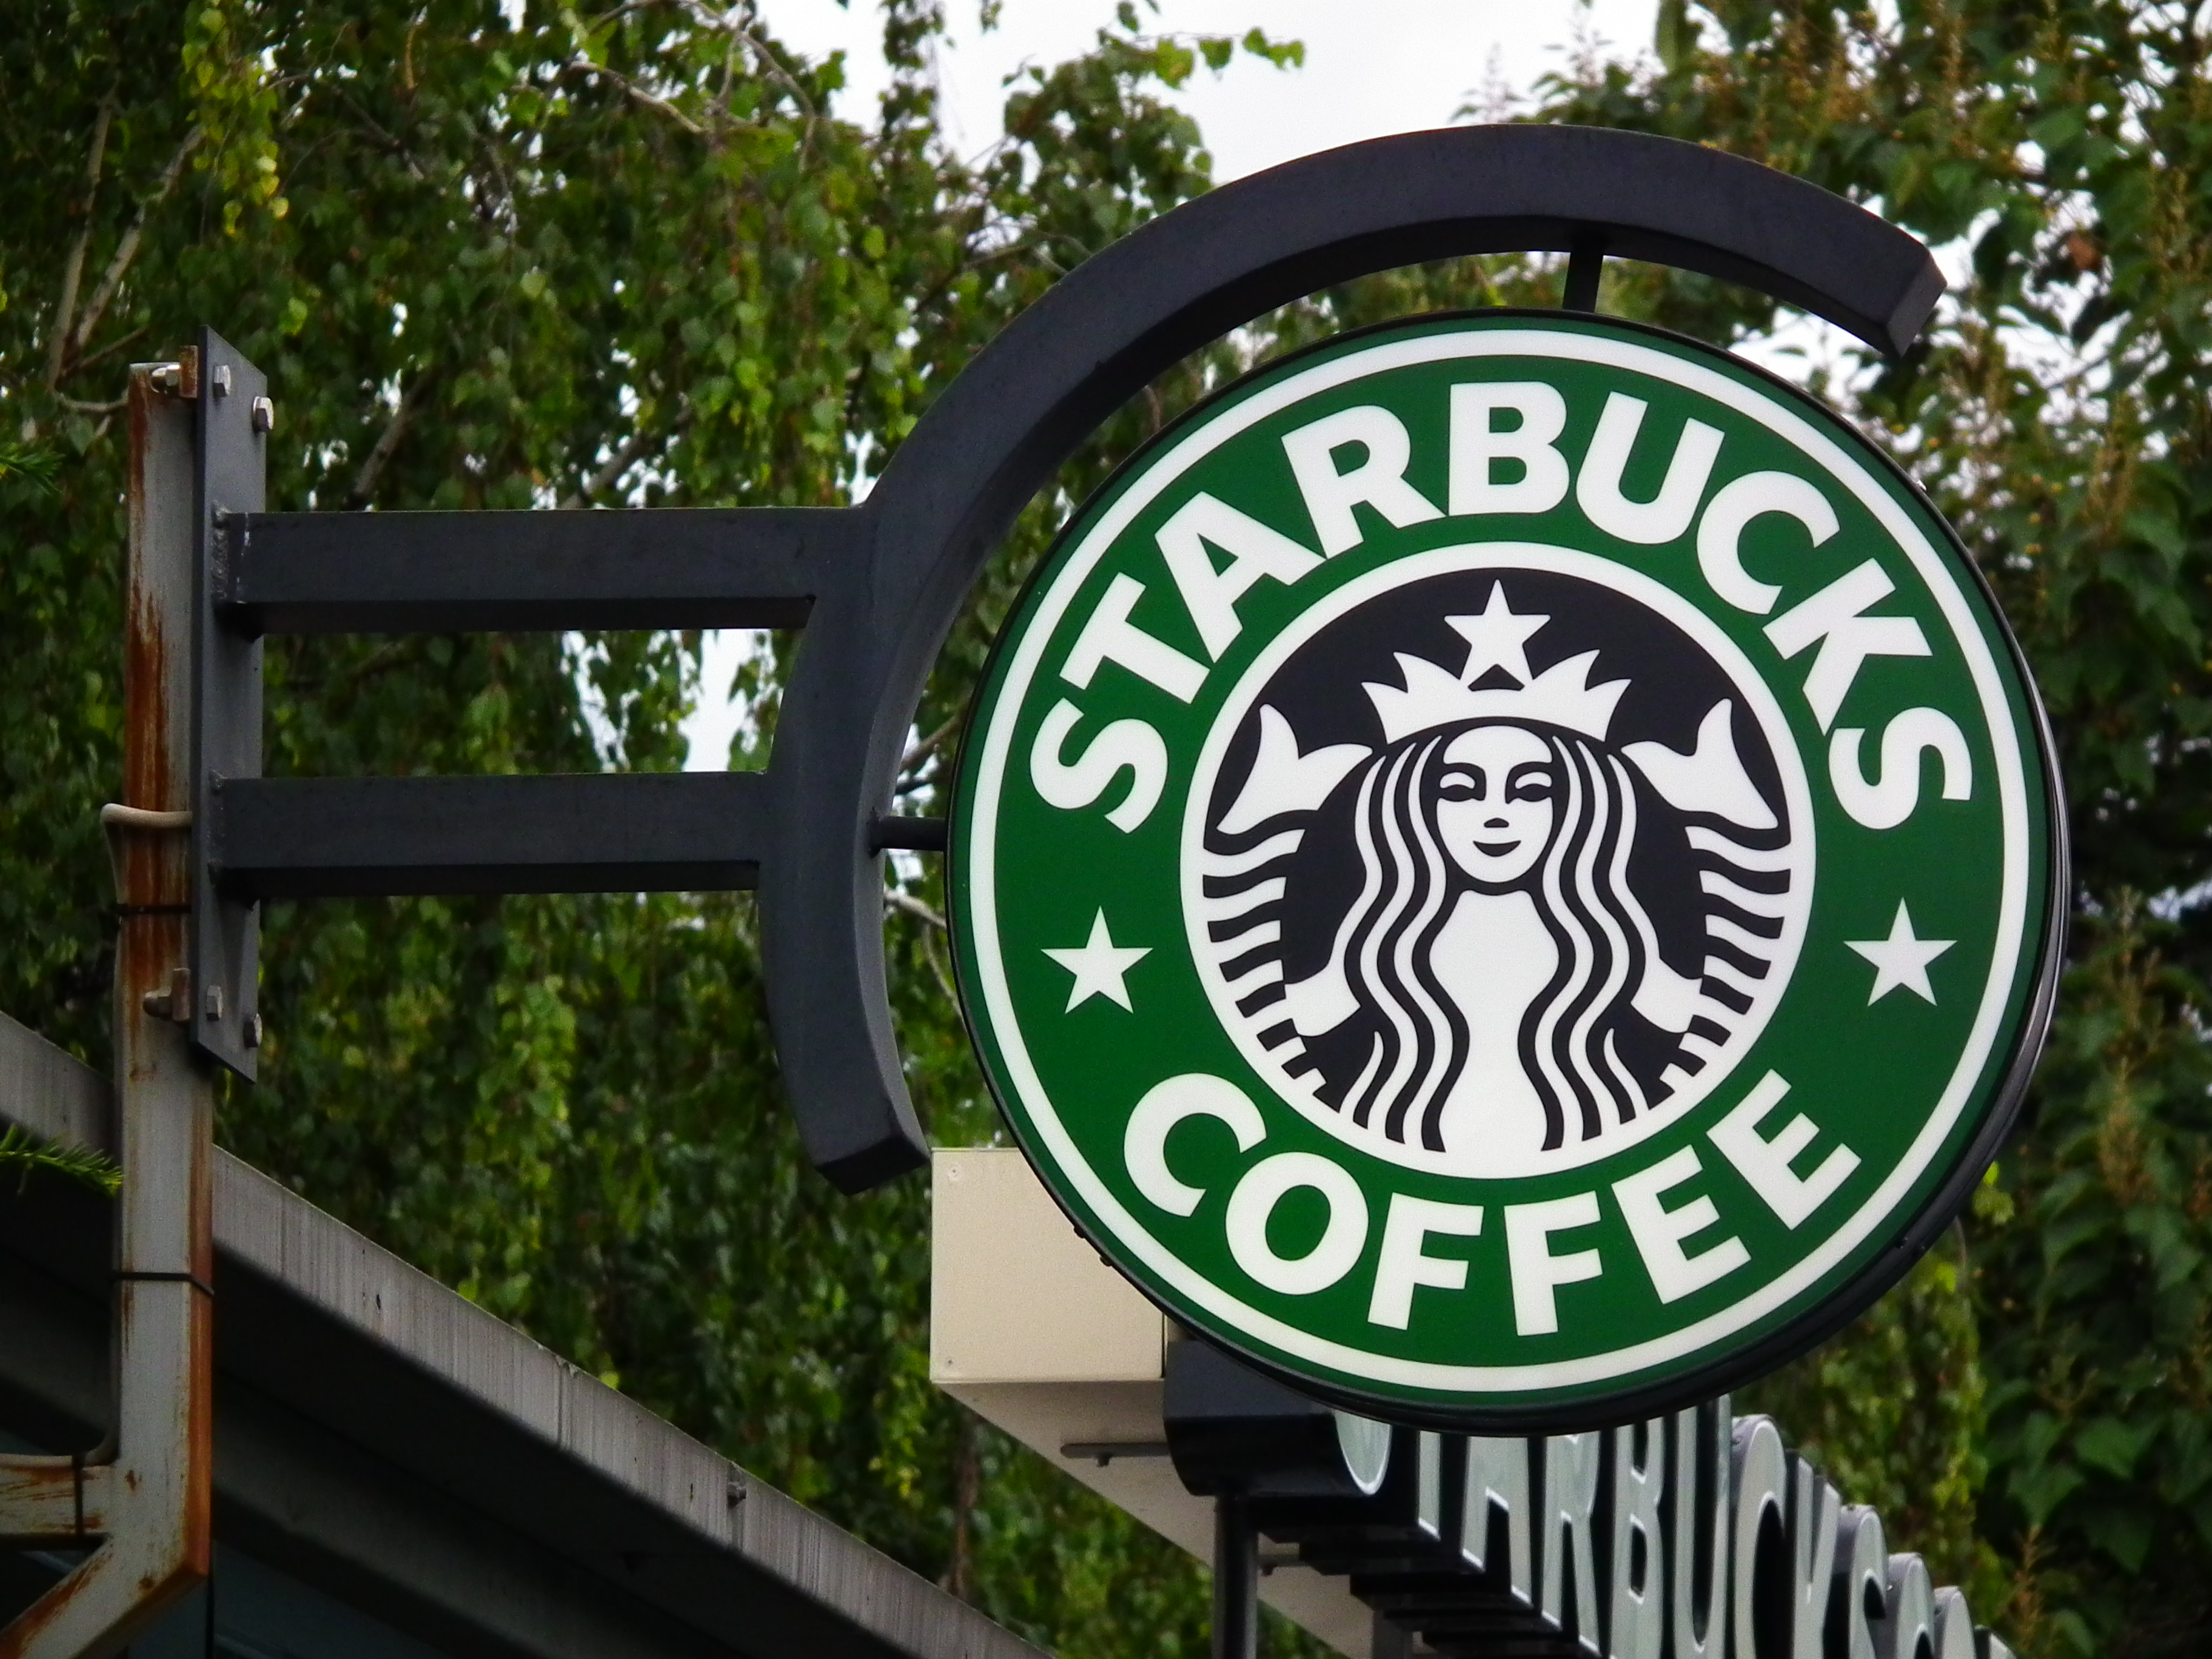 Starbucks Comes Under Fire For Its Festive Cup Waste